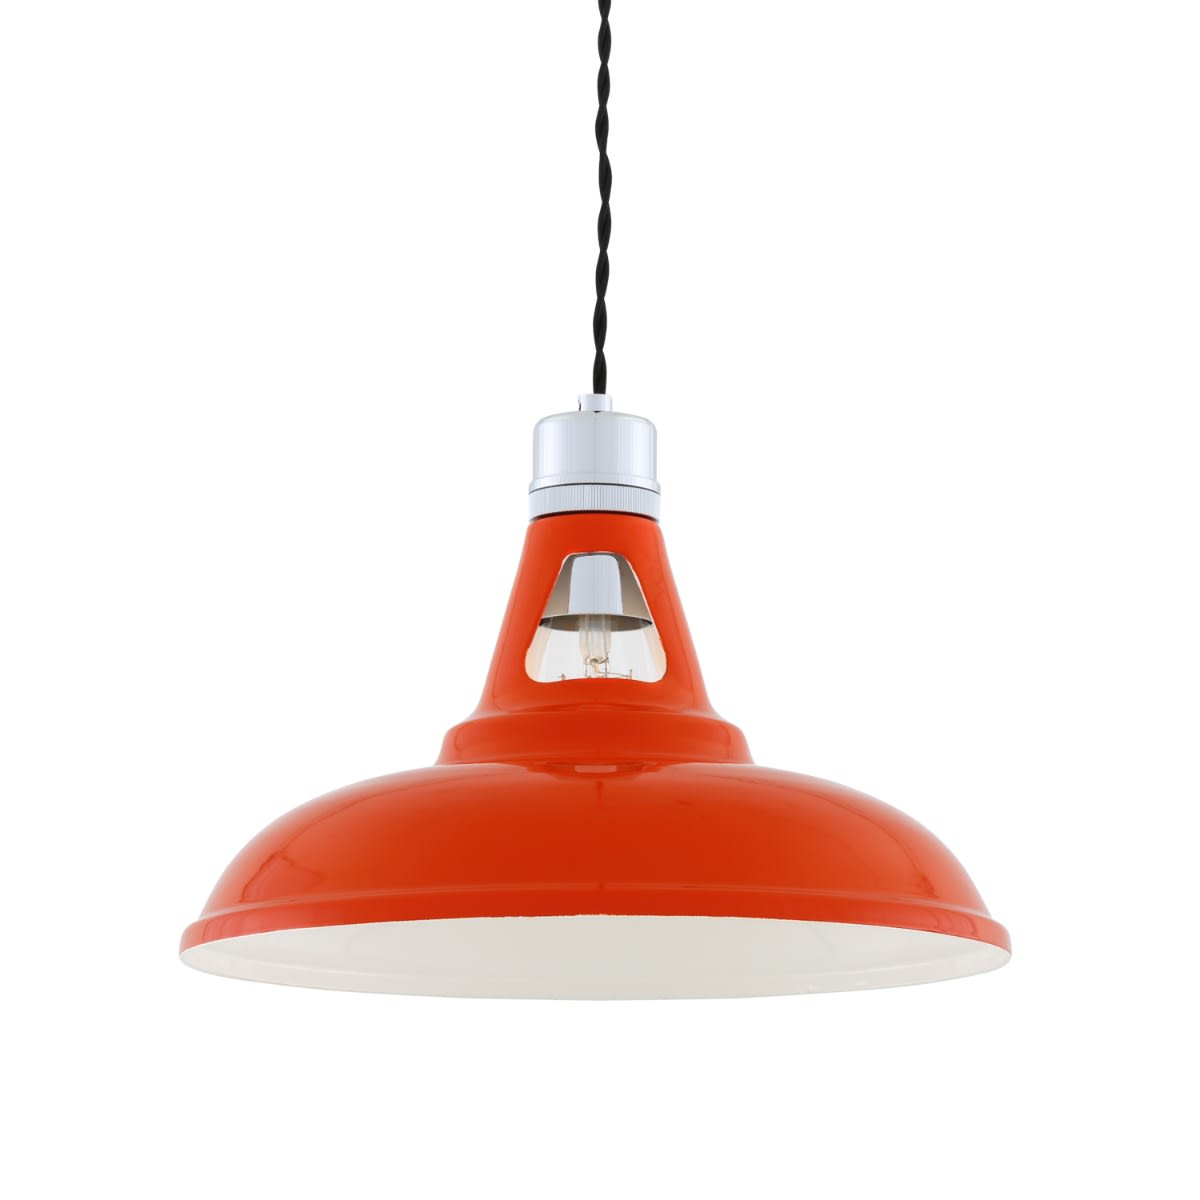 Suspension industrielle Vienna rouge - Mullan Lighting